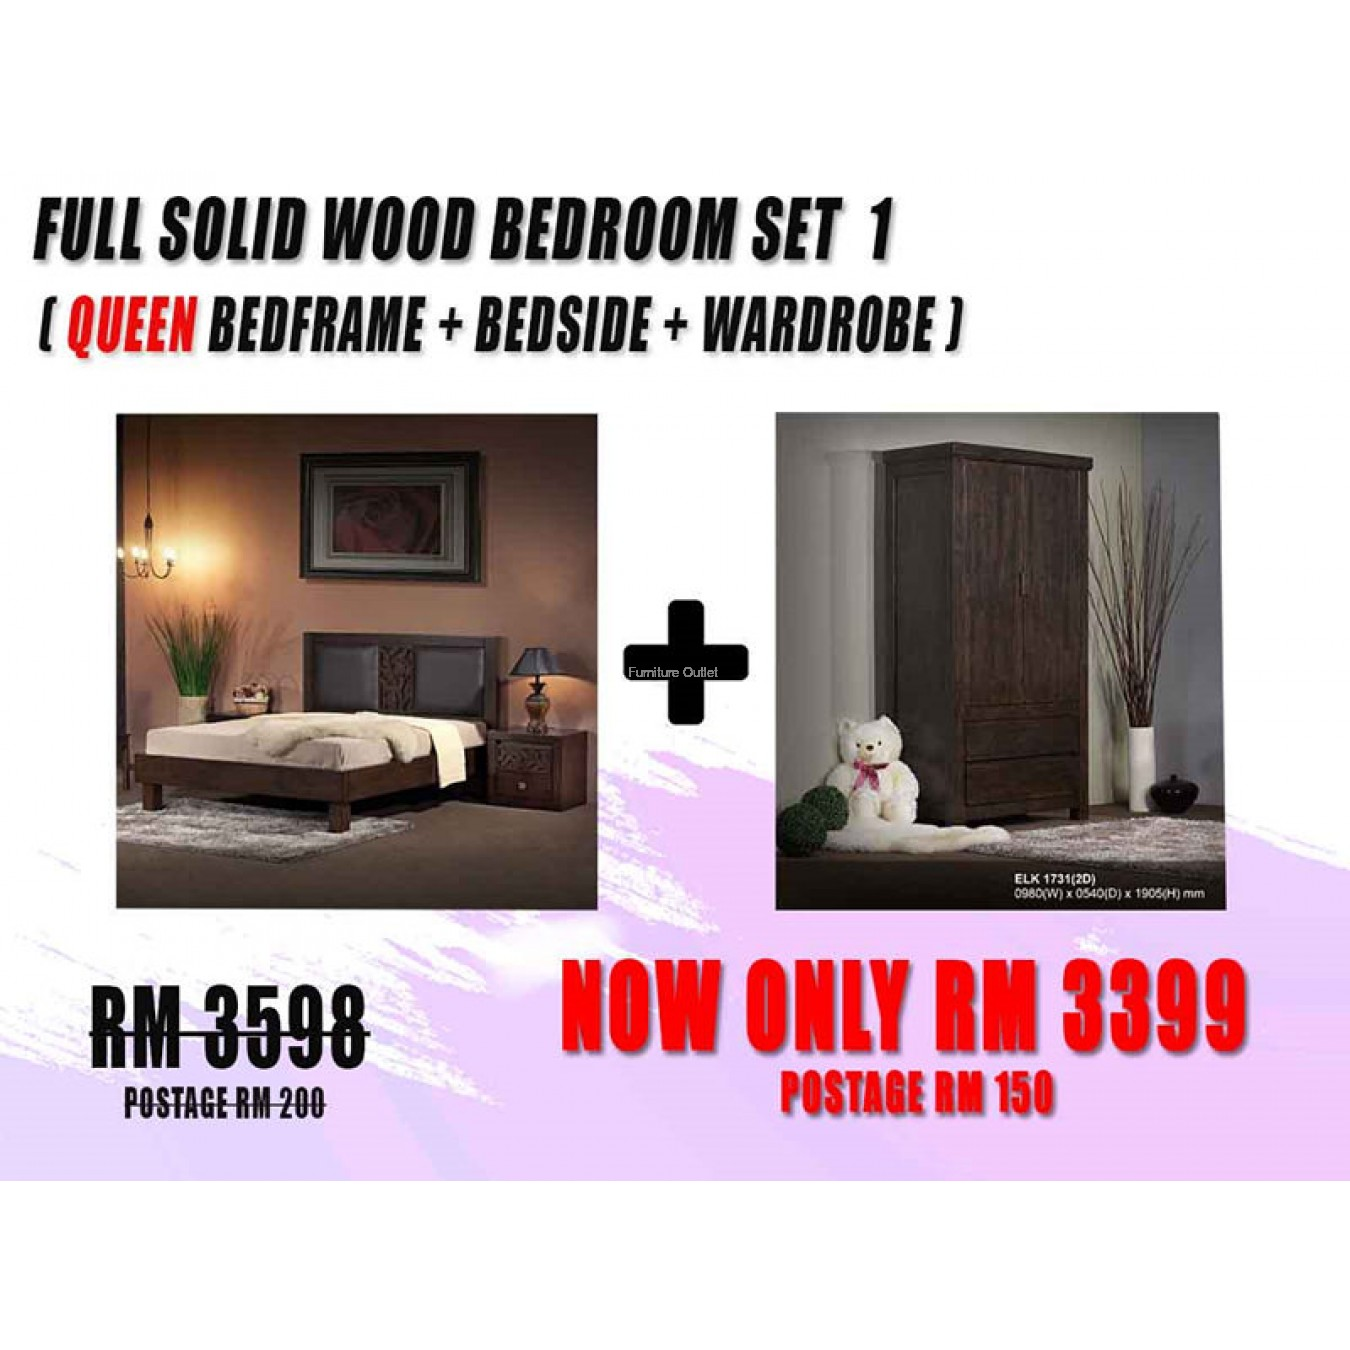 FULL SOLID WOOD BEDROOM SET - 1